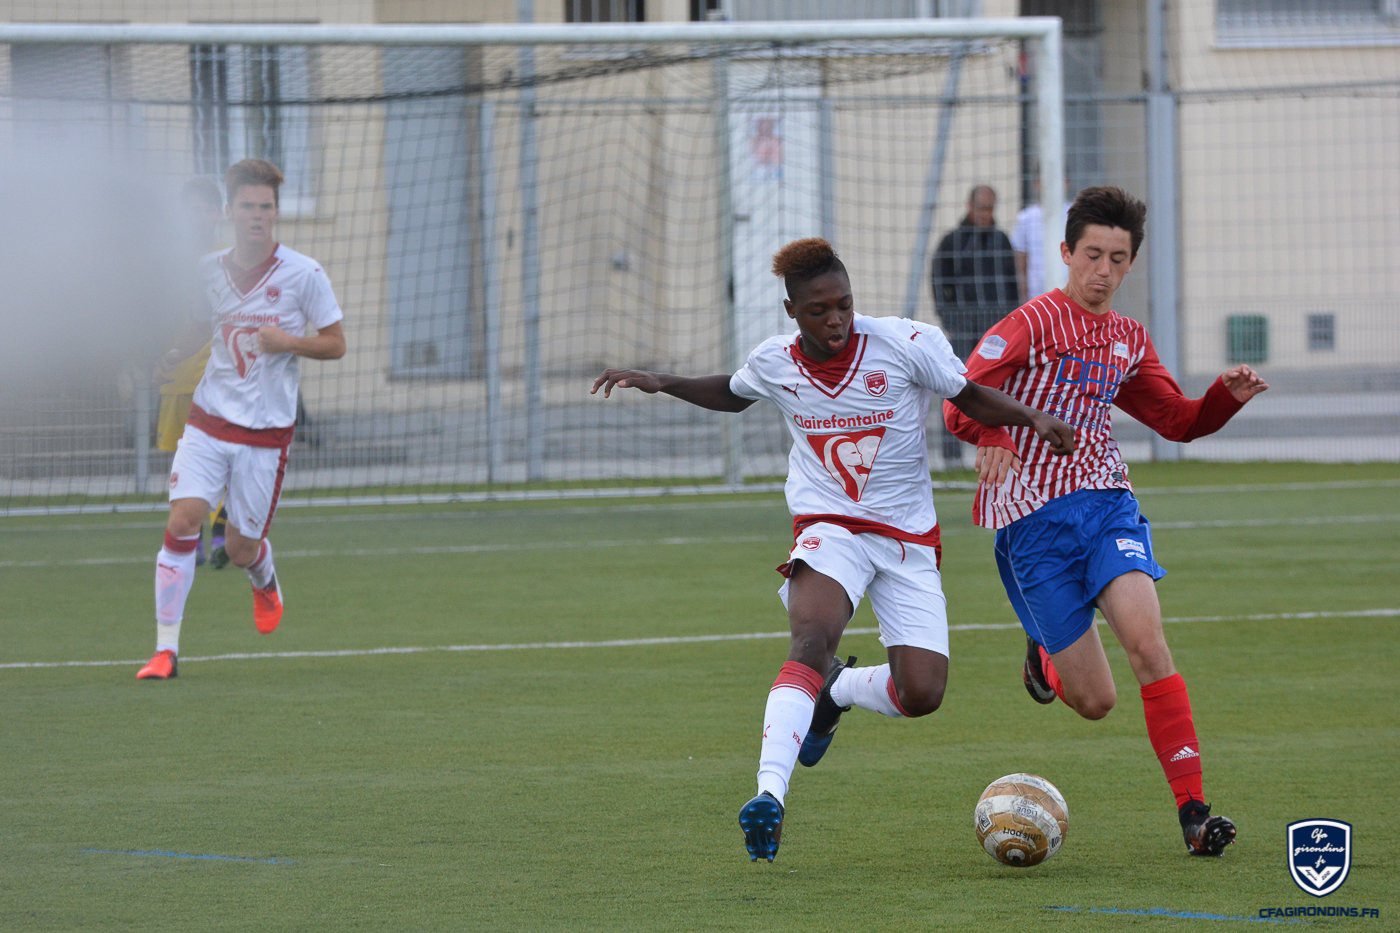 Cfa Girondins : Deux Bordelais au stage national U15 - Formation Girondins